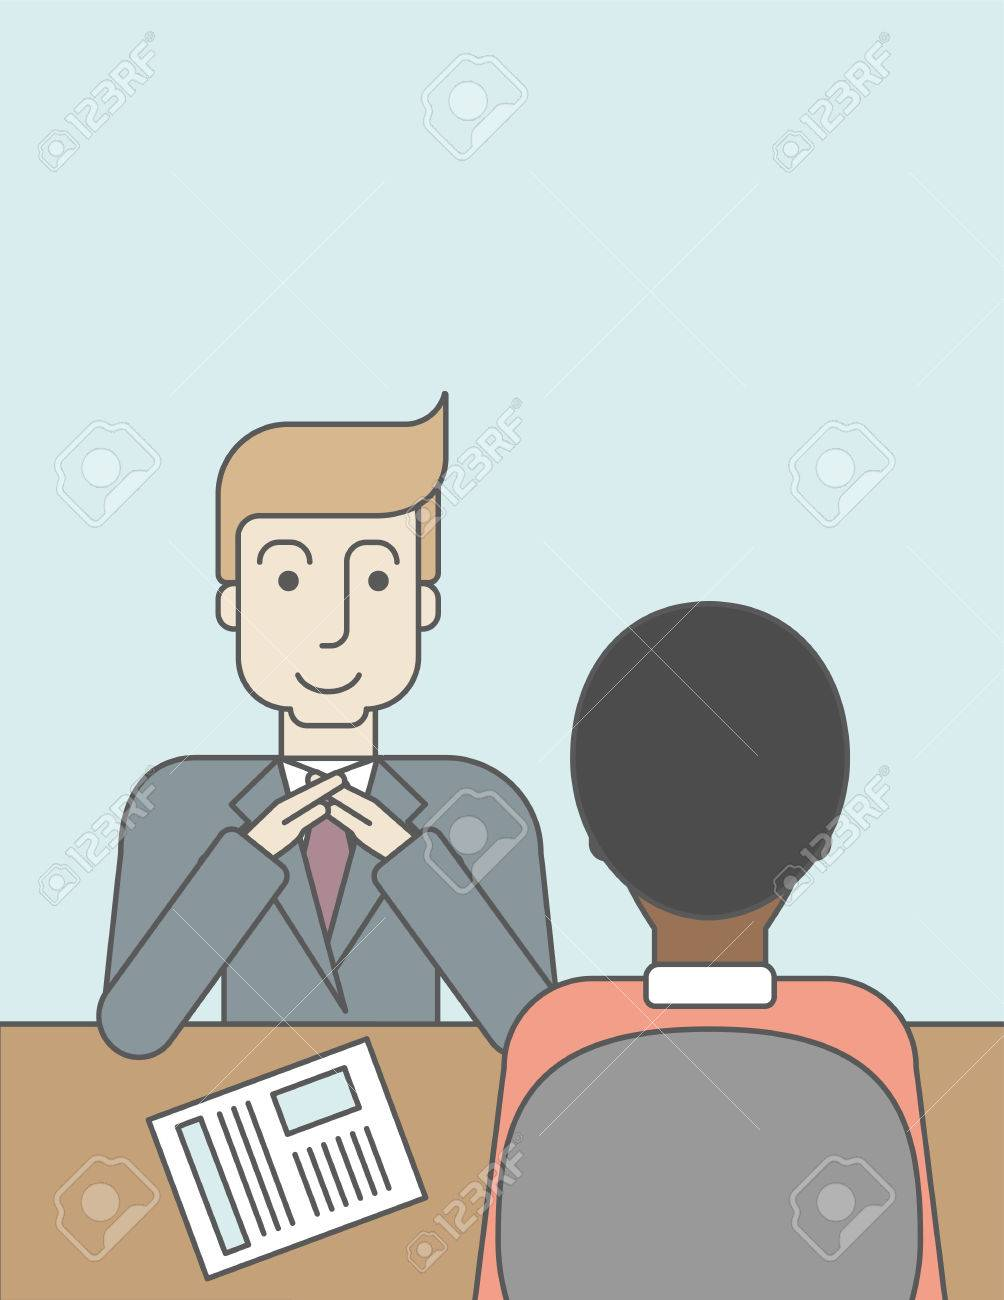 A Smiling Caucasian Human Resource Manager Interviewed The Applicant